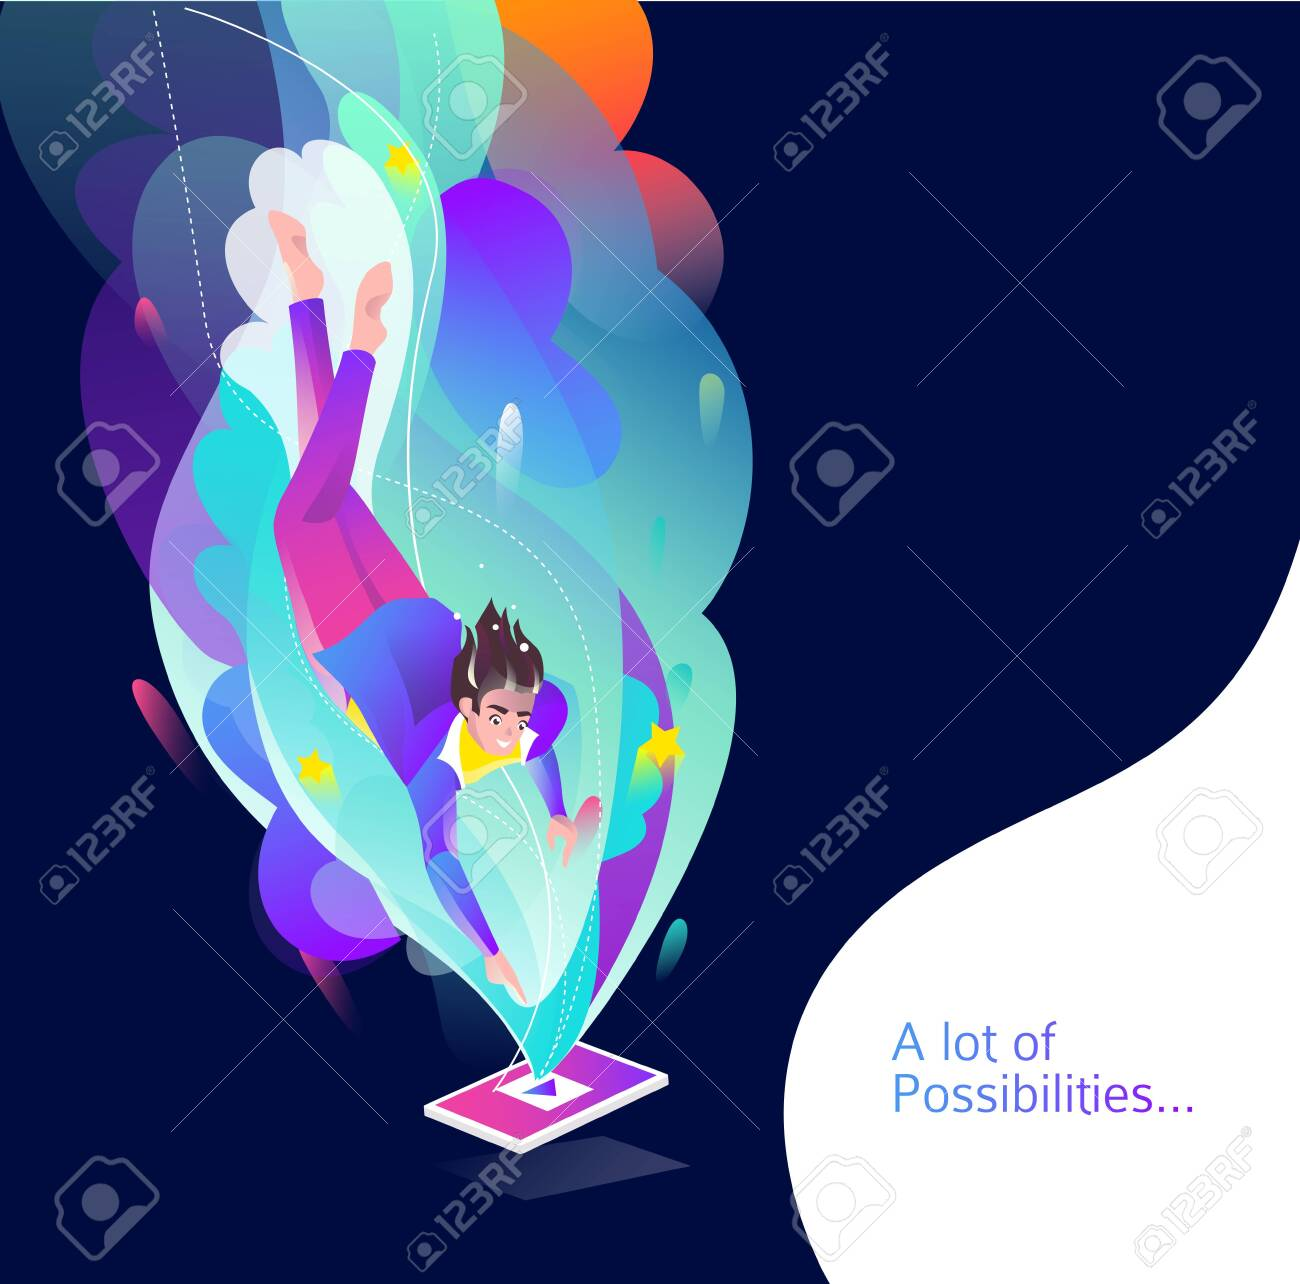 Concept in flat style with man falling down to tablet. Internet freedom, free wifi, on-line education, game, reading, inspiration. Vector illustration. - 136053092